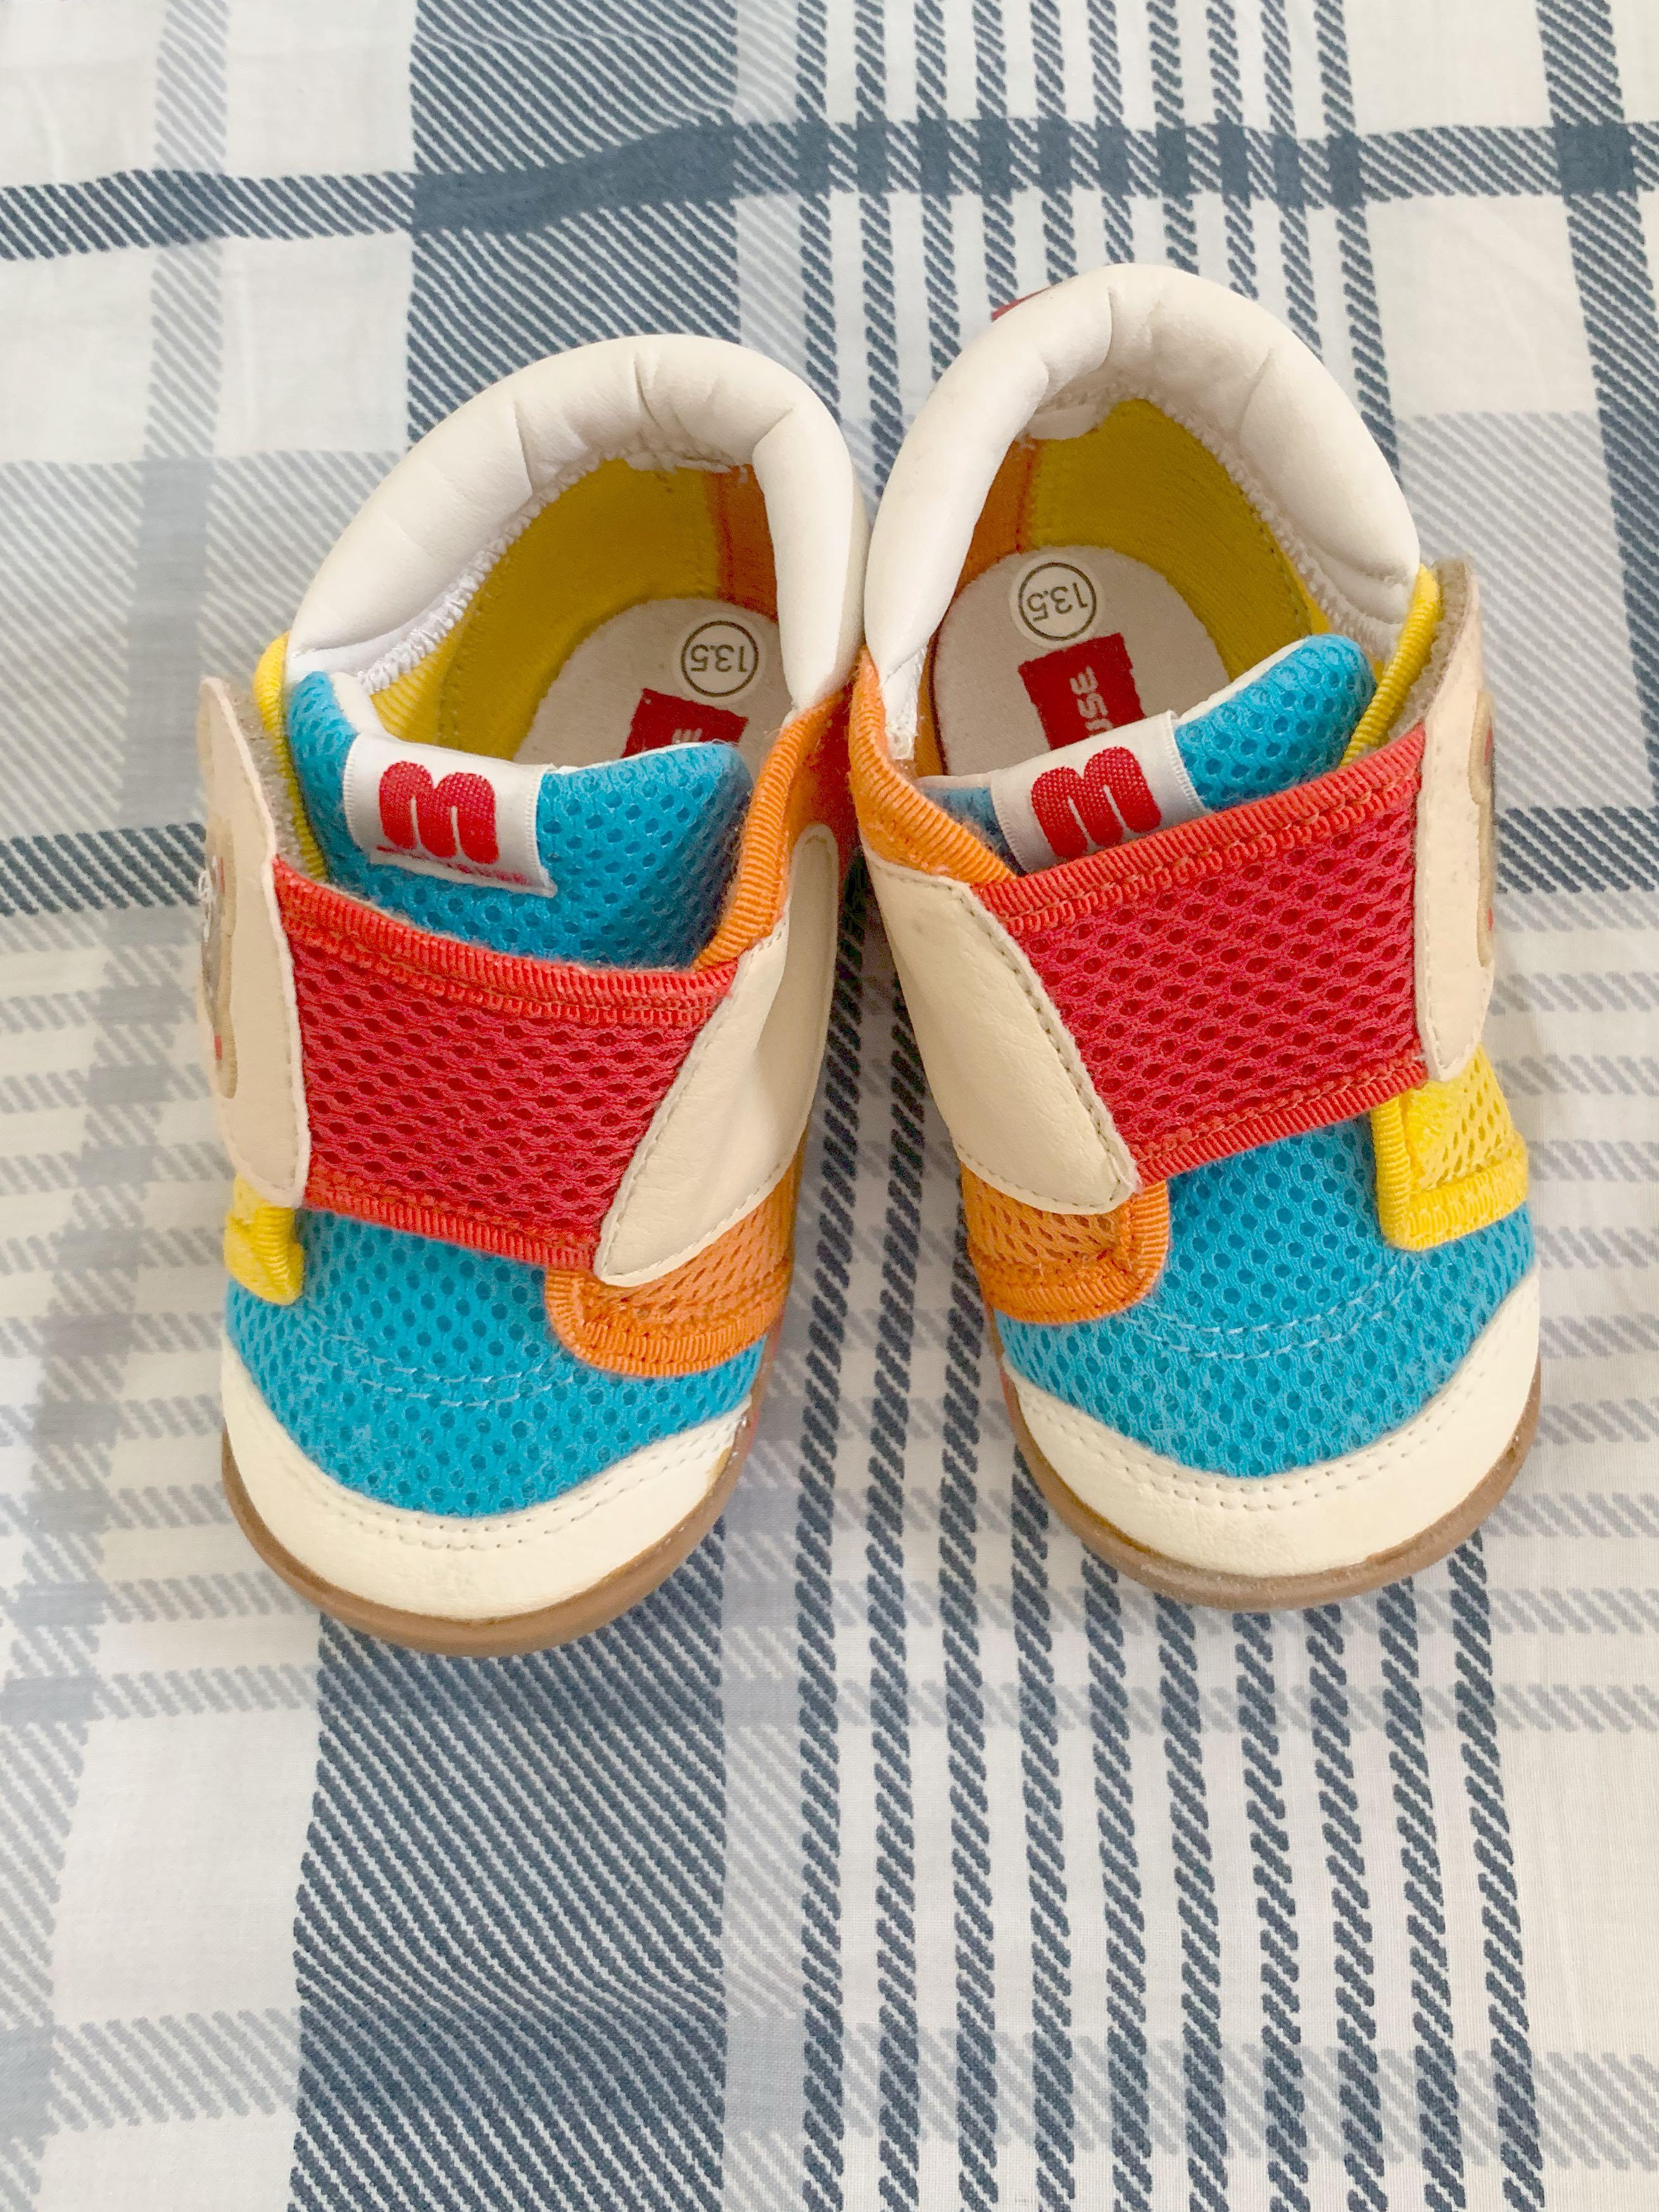 Mikihouse baby shoes 13.5cm, Babies